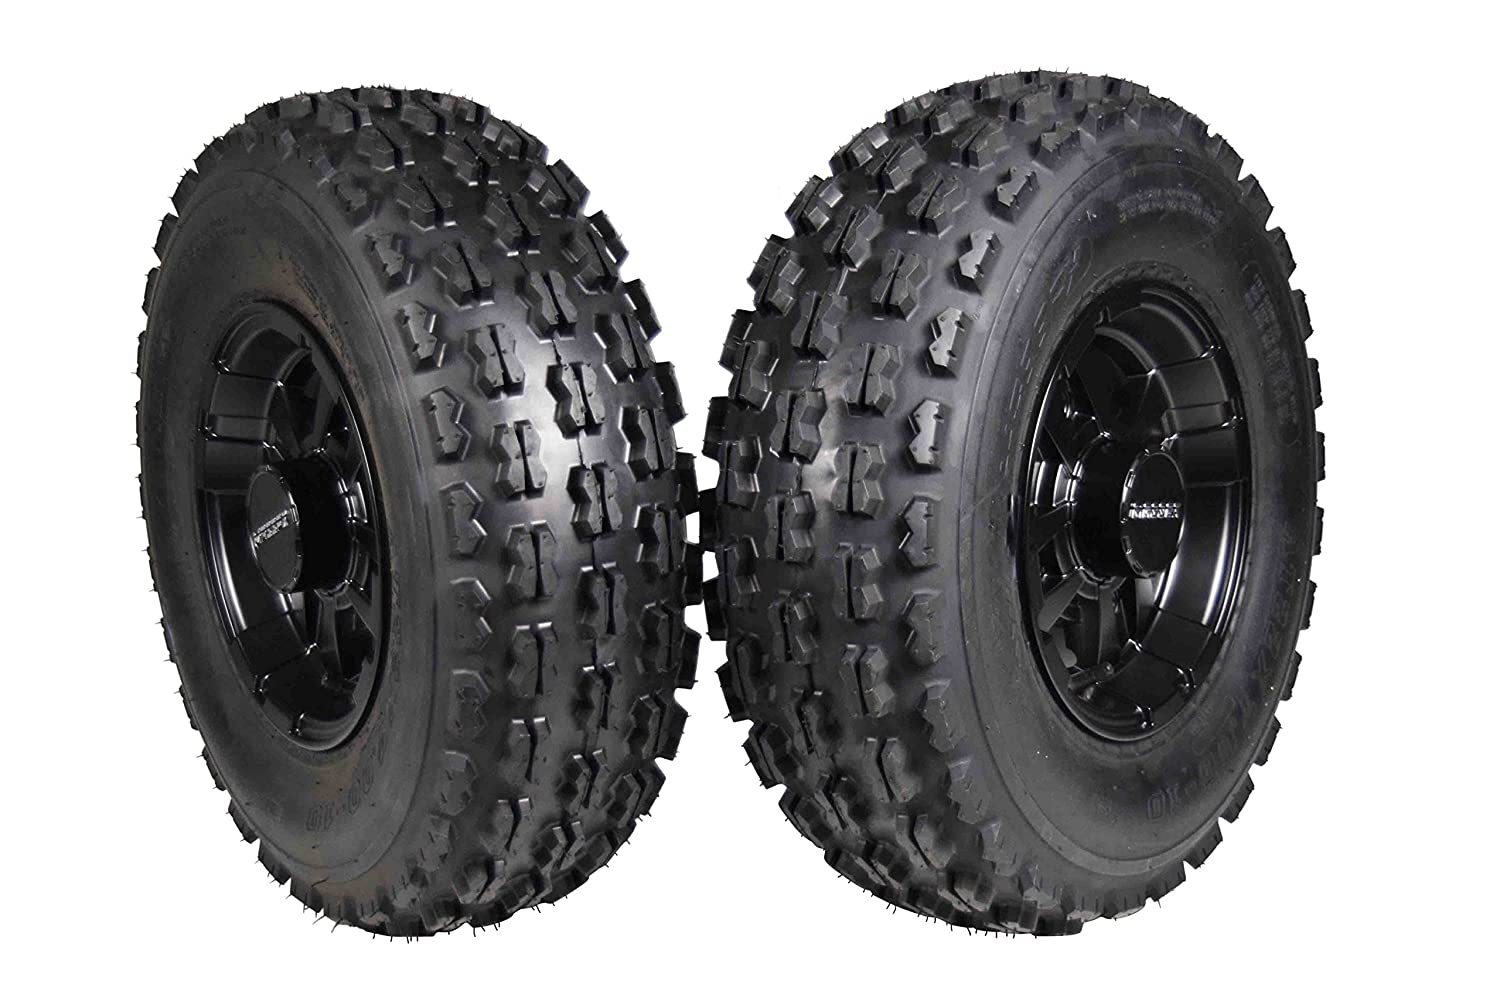 HONDA FRONT 22x7-10 MASSFX TIRE WITH BLACK MASSFX 10x5 4/144 RIM 2 PACK